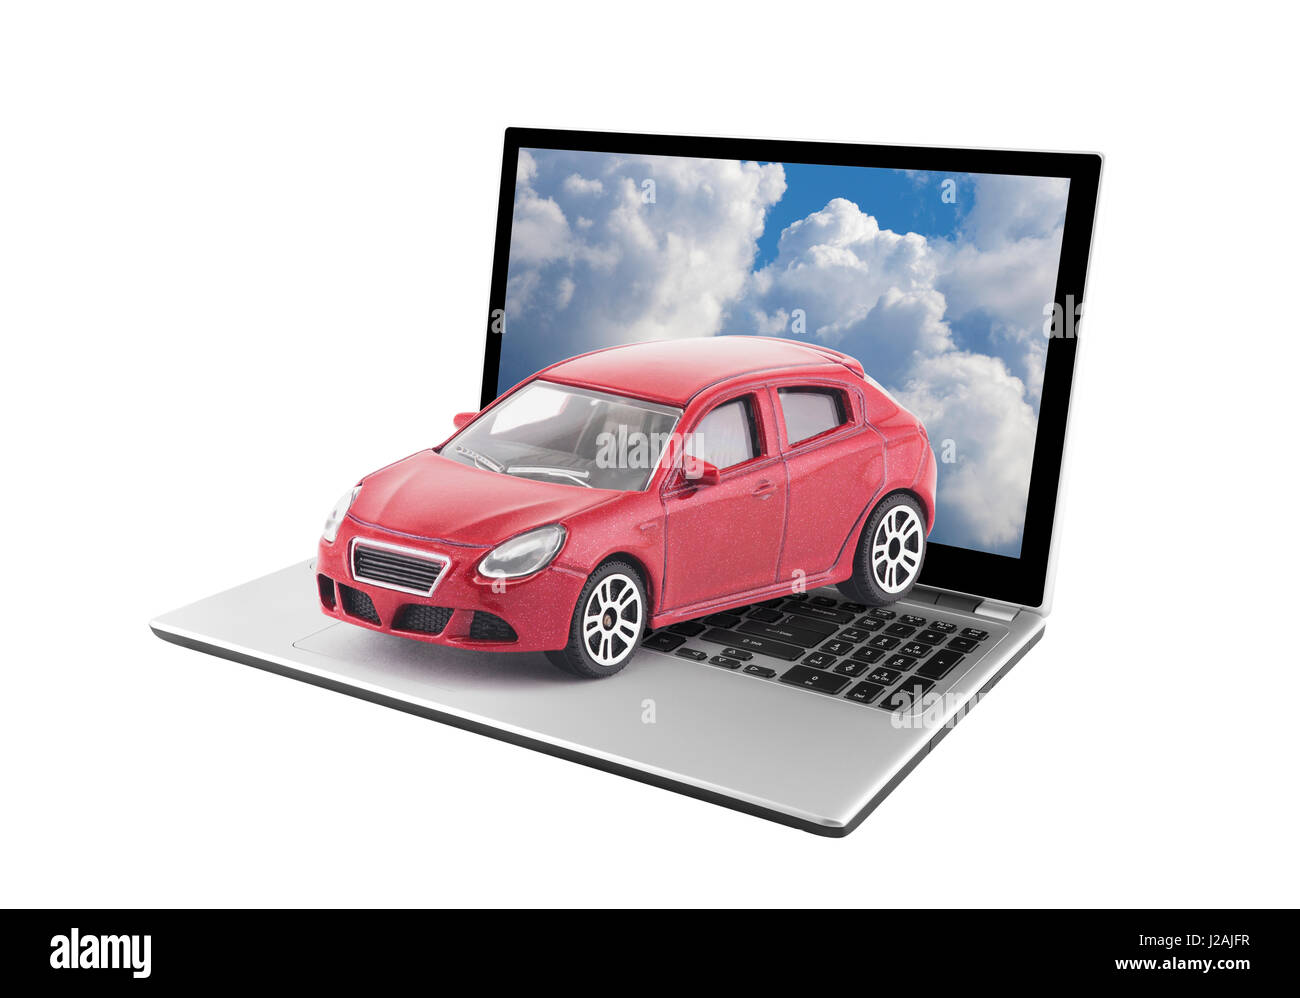 how to buy a car on the internet